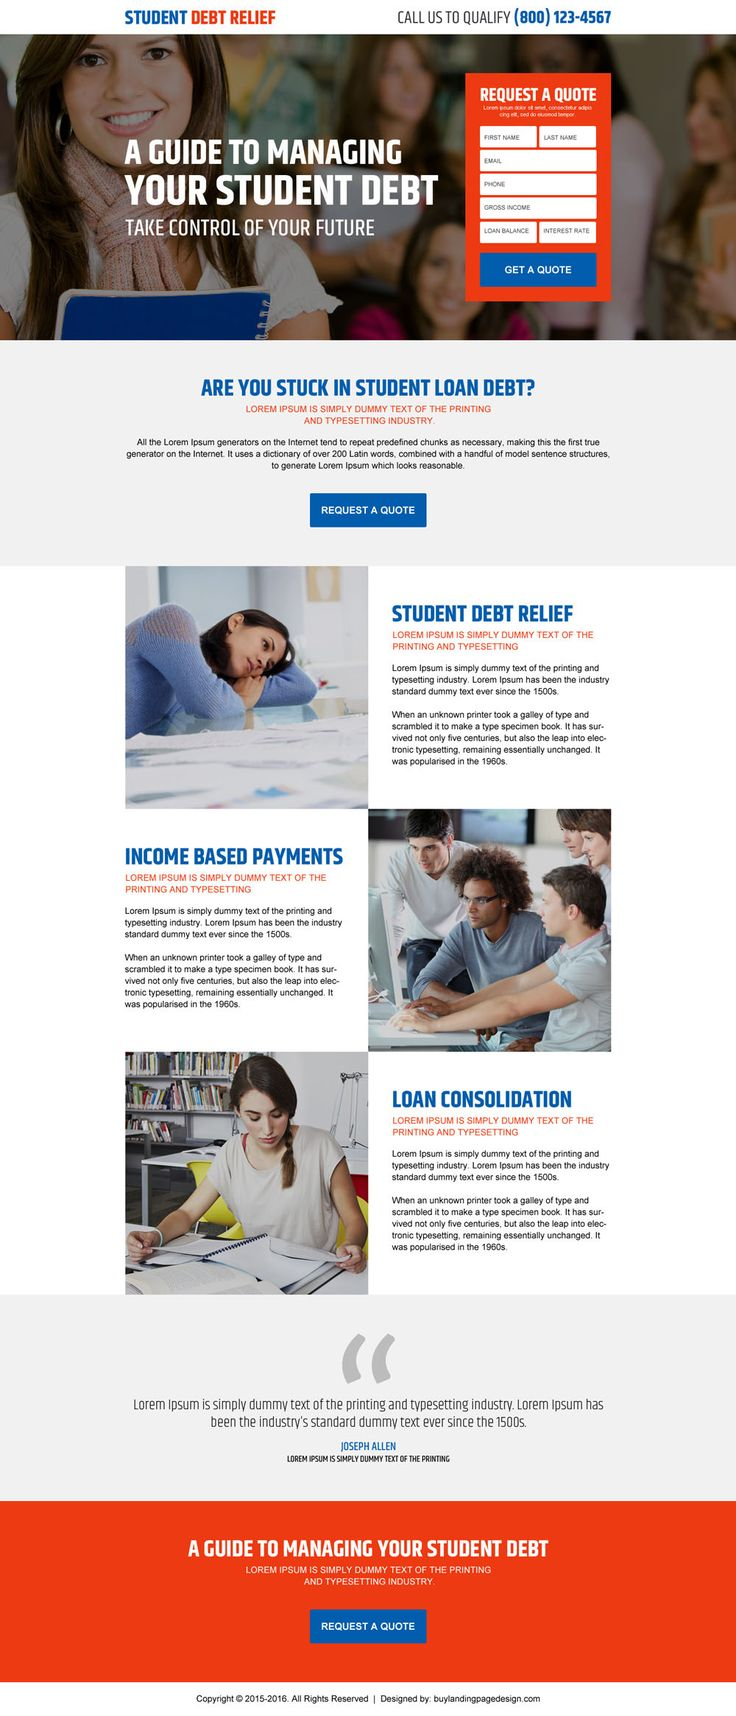 student debt relief guide converting responsive landing page design